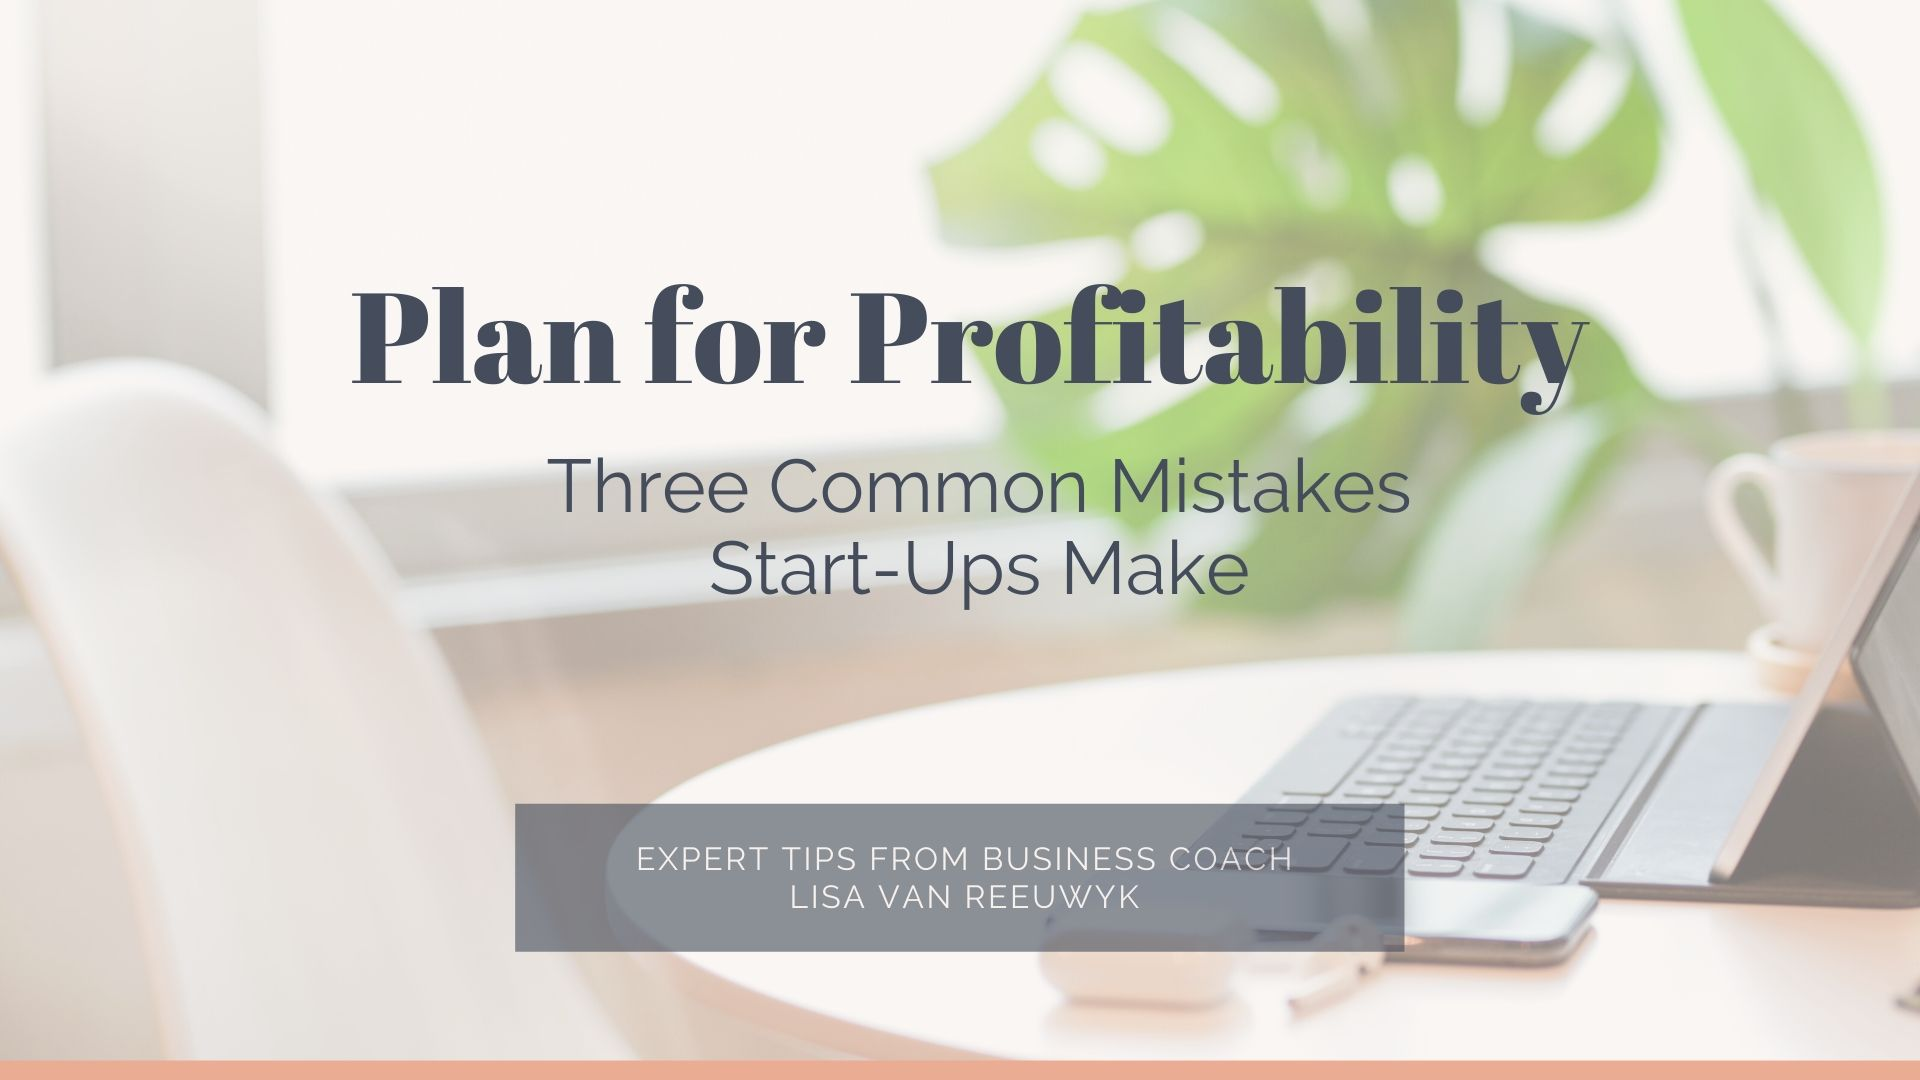 Plan for profitability and avoid these common start-up mistakes - Lisa van Reeuwyk